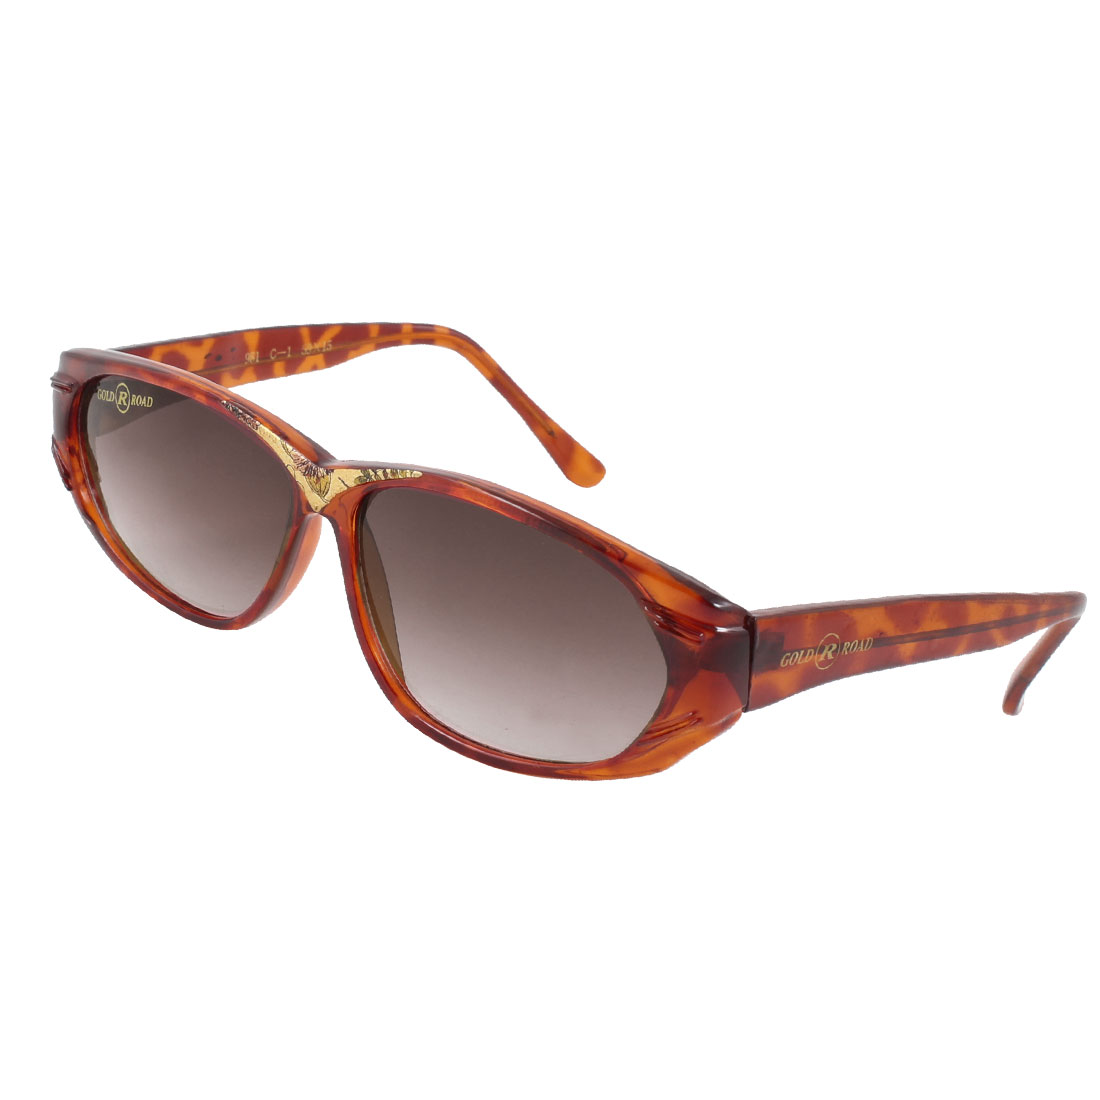 Woman Lady Single Bridge Brown Arms Full Frame Dark Burgundy Lens Sunglasses